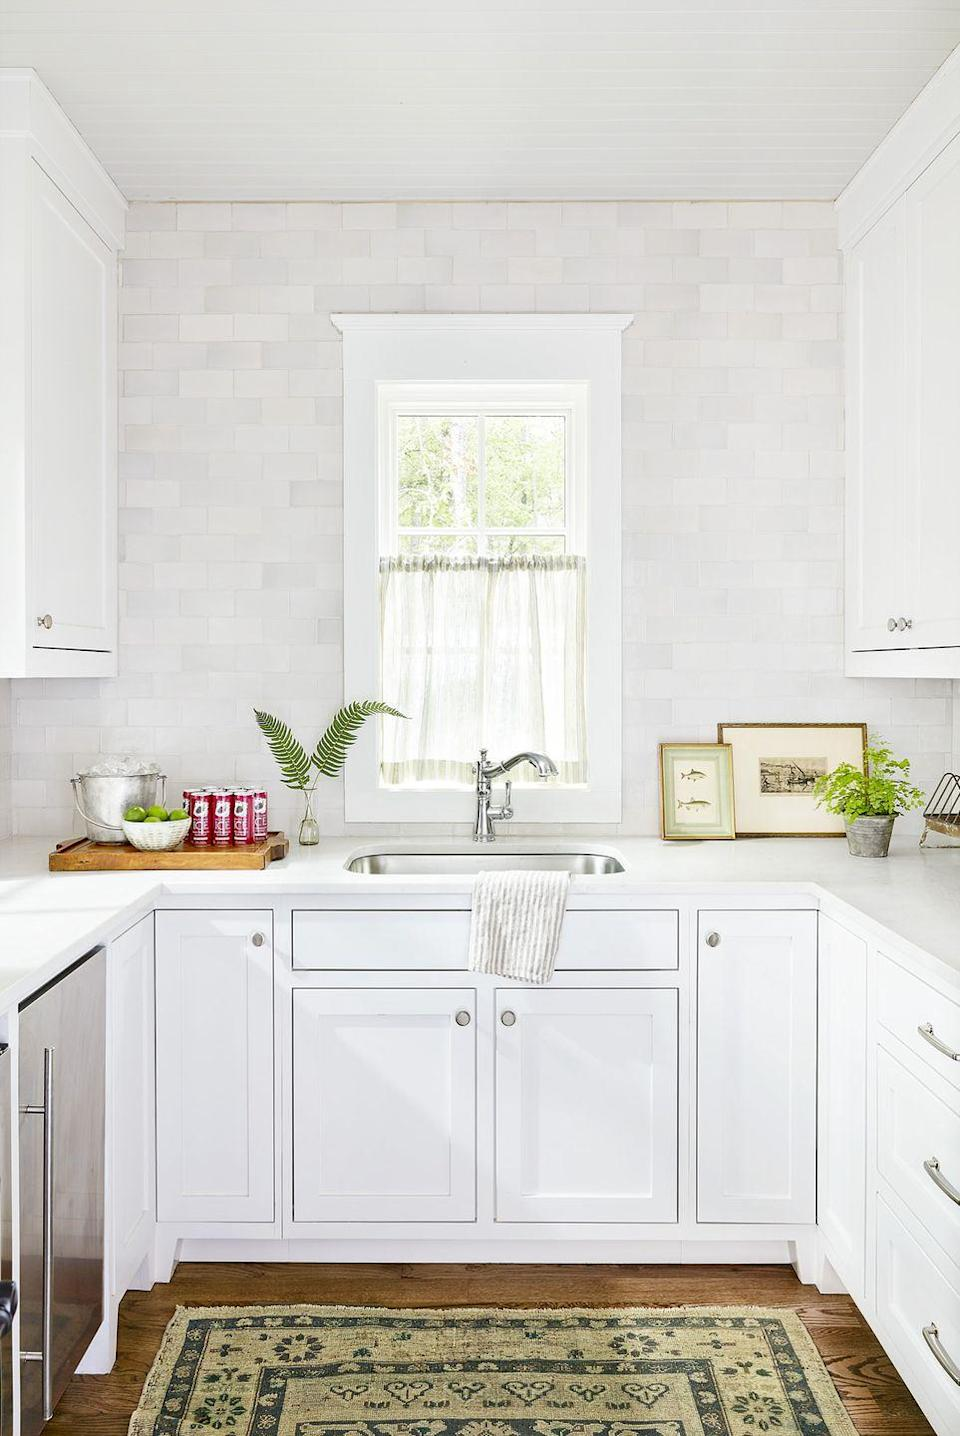 """<p>Using a Pearl Ash subway tile in this <a href=""""https://www.countryliving.com/home-design/house-tours/g4374/country-living-lake-house-of-the-year/"""" rel=""""nofollow noopener"""" target=""""_blank"""" data-ylk=""""slk:lake house kitchen and pantry"""" class=""""link rapid-noclick-resp"""">lake house kitchen and pantry</a> gives the white space added dimension in a subtle way.</p>"""